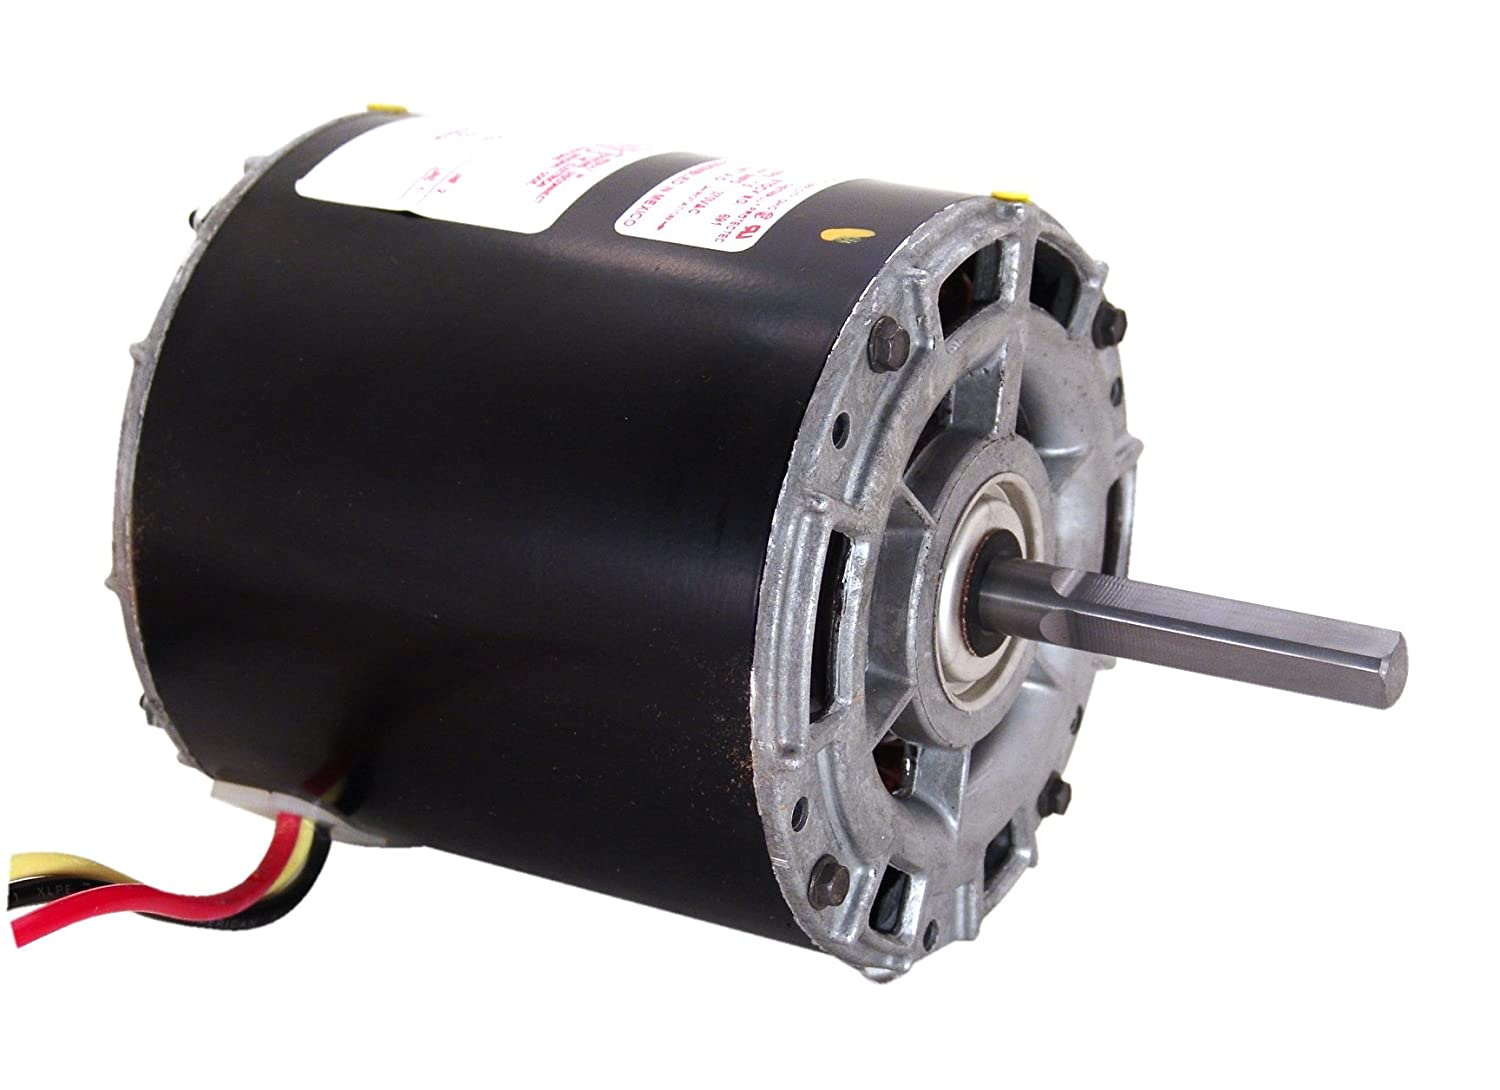 A.O. Smith 485 5.0-Inch 1/20 HP Open Enclosure, Reversible Rotation, 1/2 by 2-1/2 Shaft, Sleeve Bearing General Purpose PSC Motor